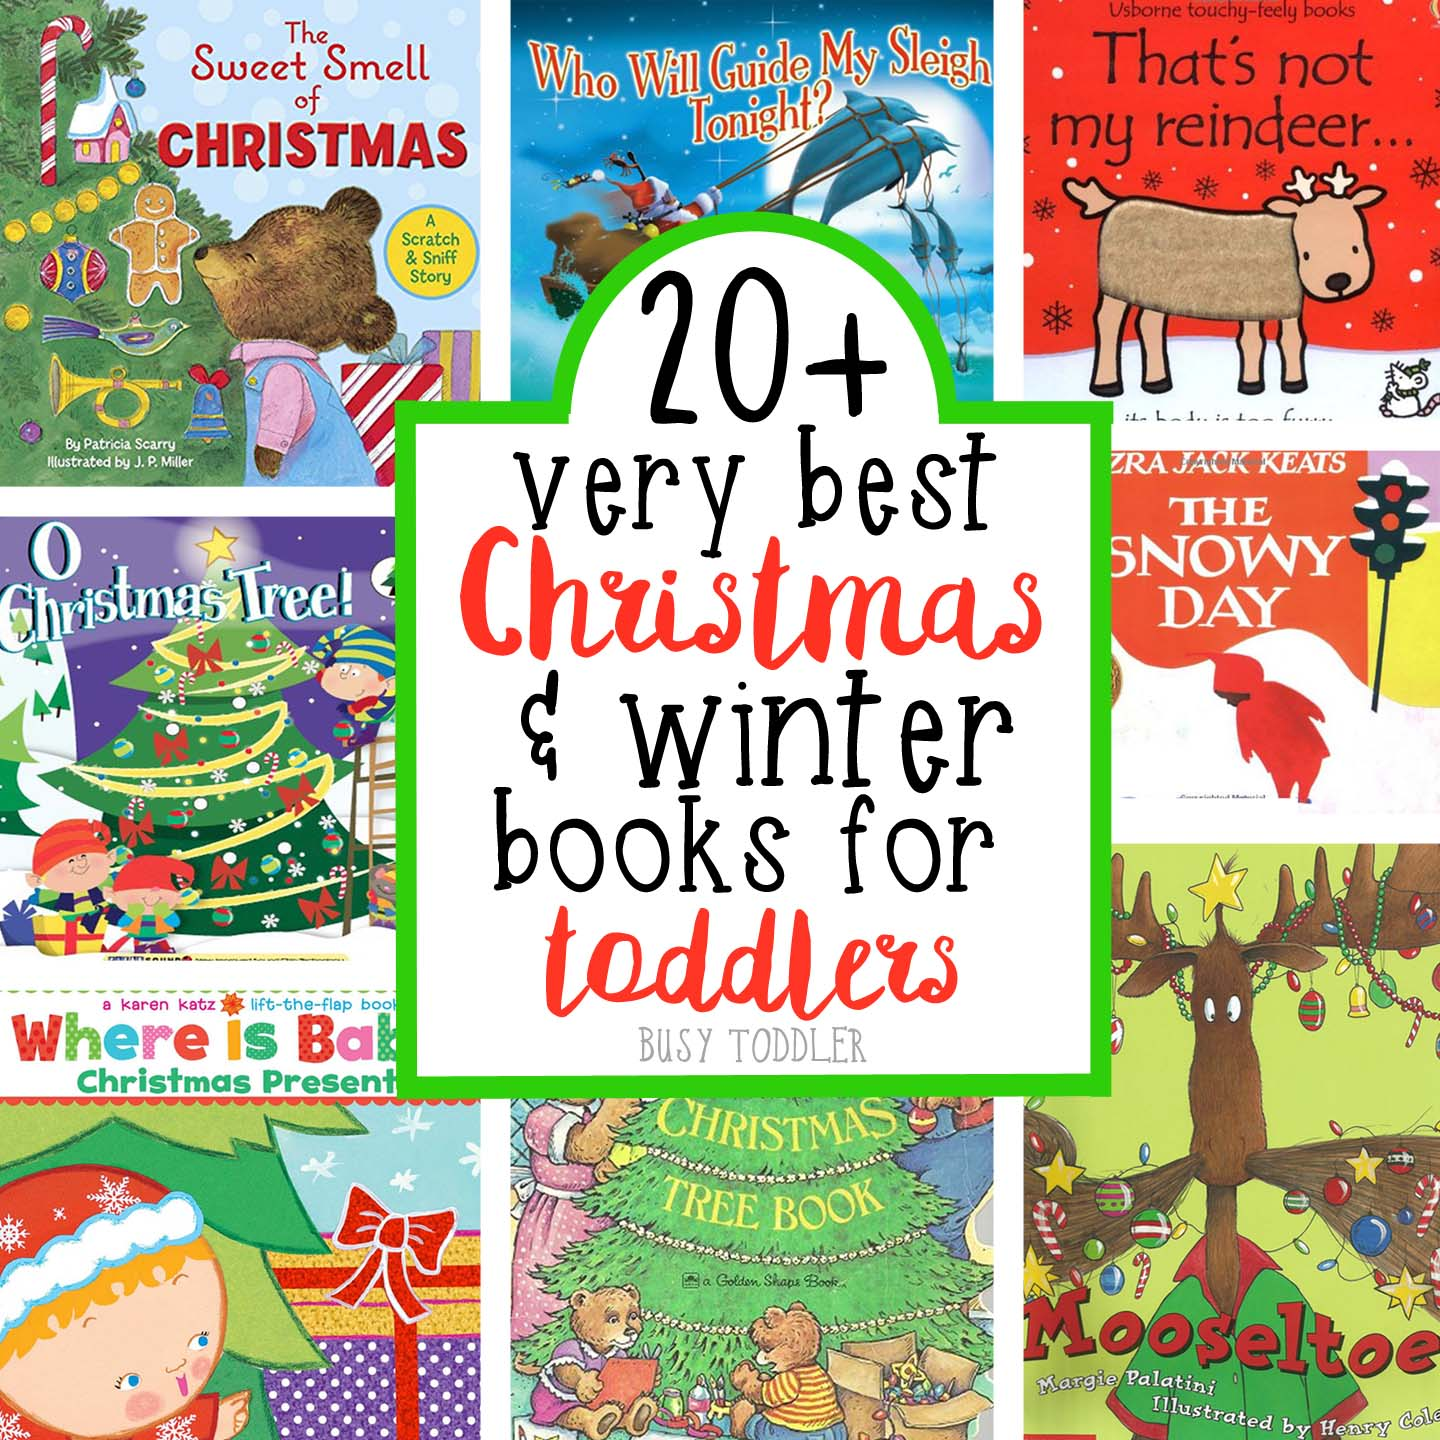 Christmas Books For Kids.Best Christmas Books For Toddlers Busy Toddler